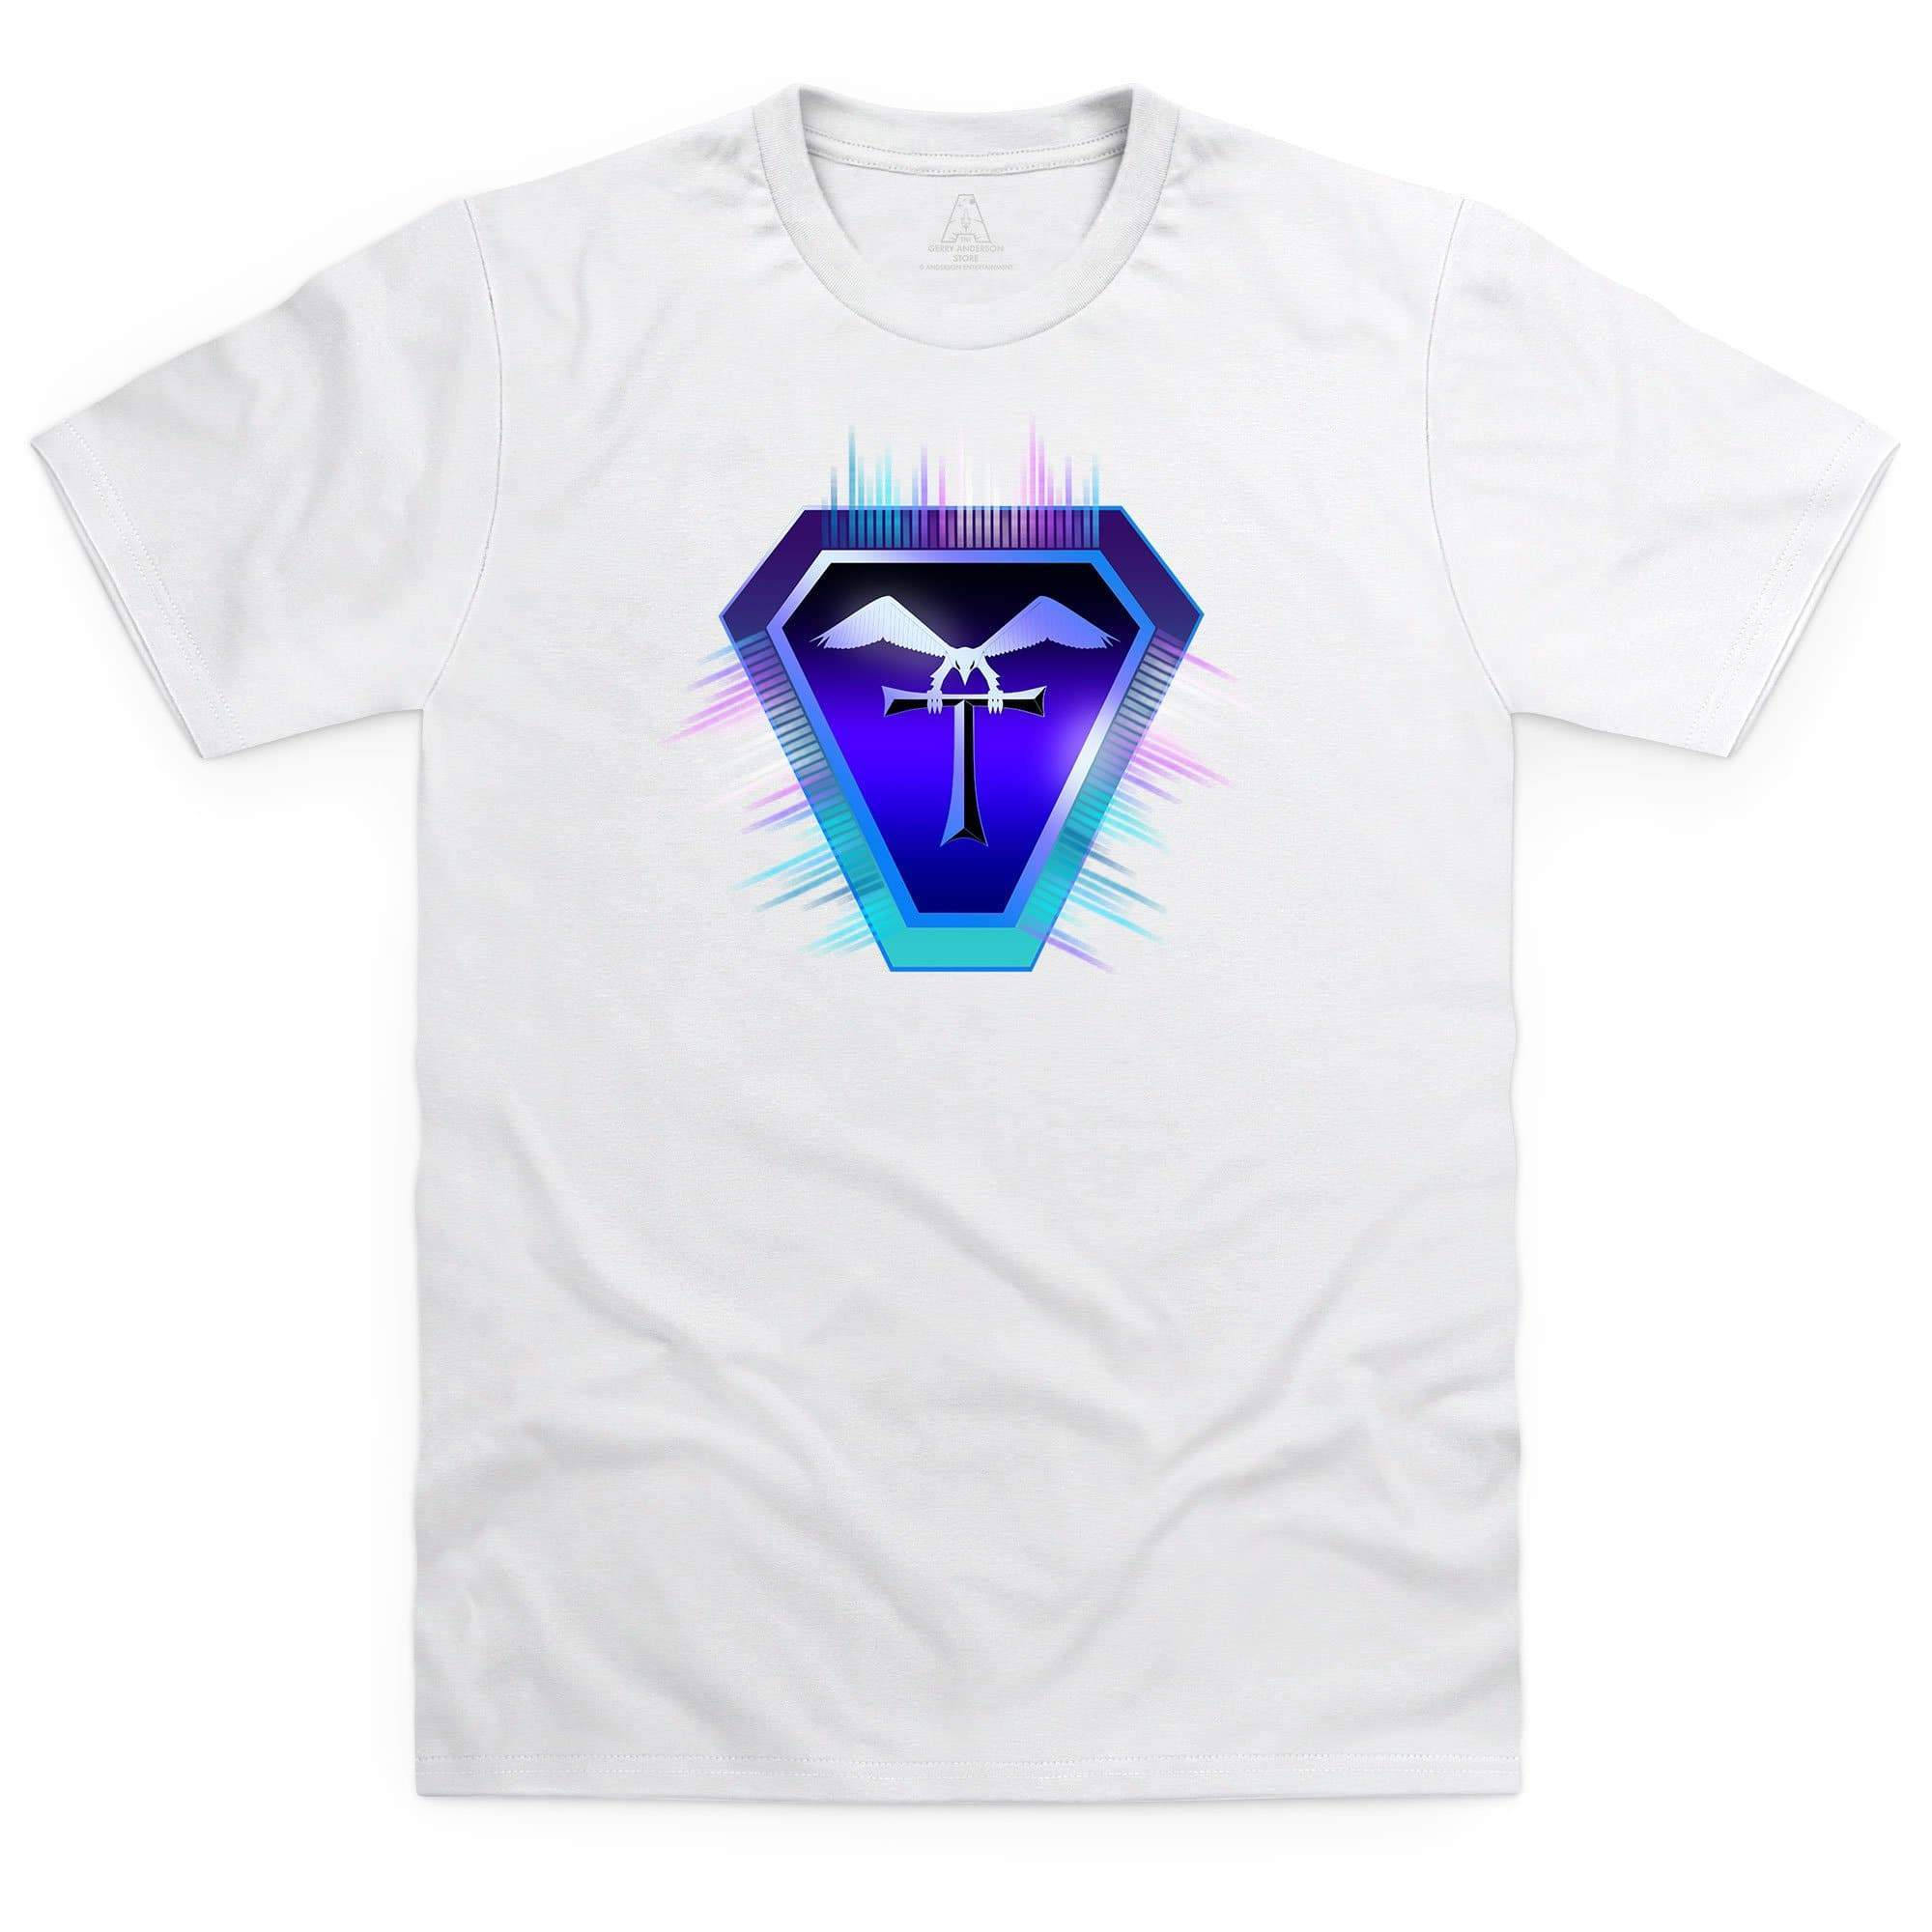 Terrahawks Neon Logo Men's White T-Shirt [Official & Exclusive] - The Gerry Anderson Store